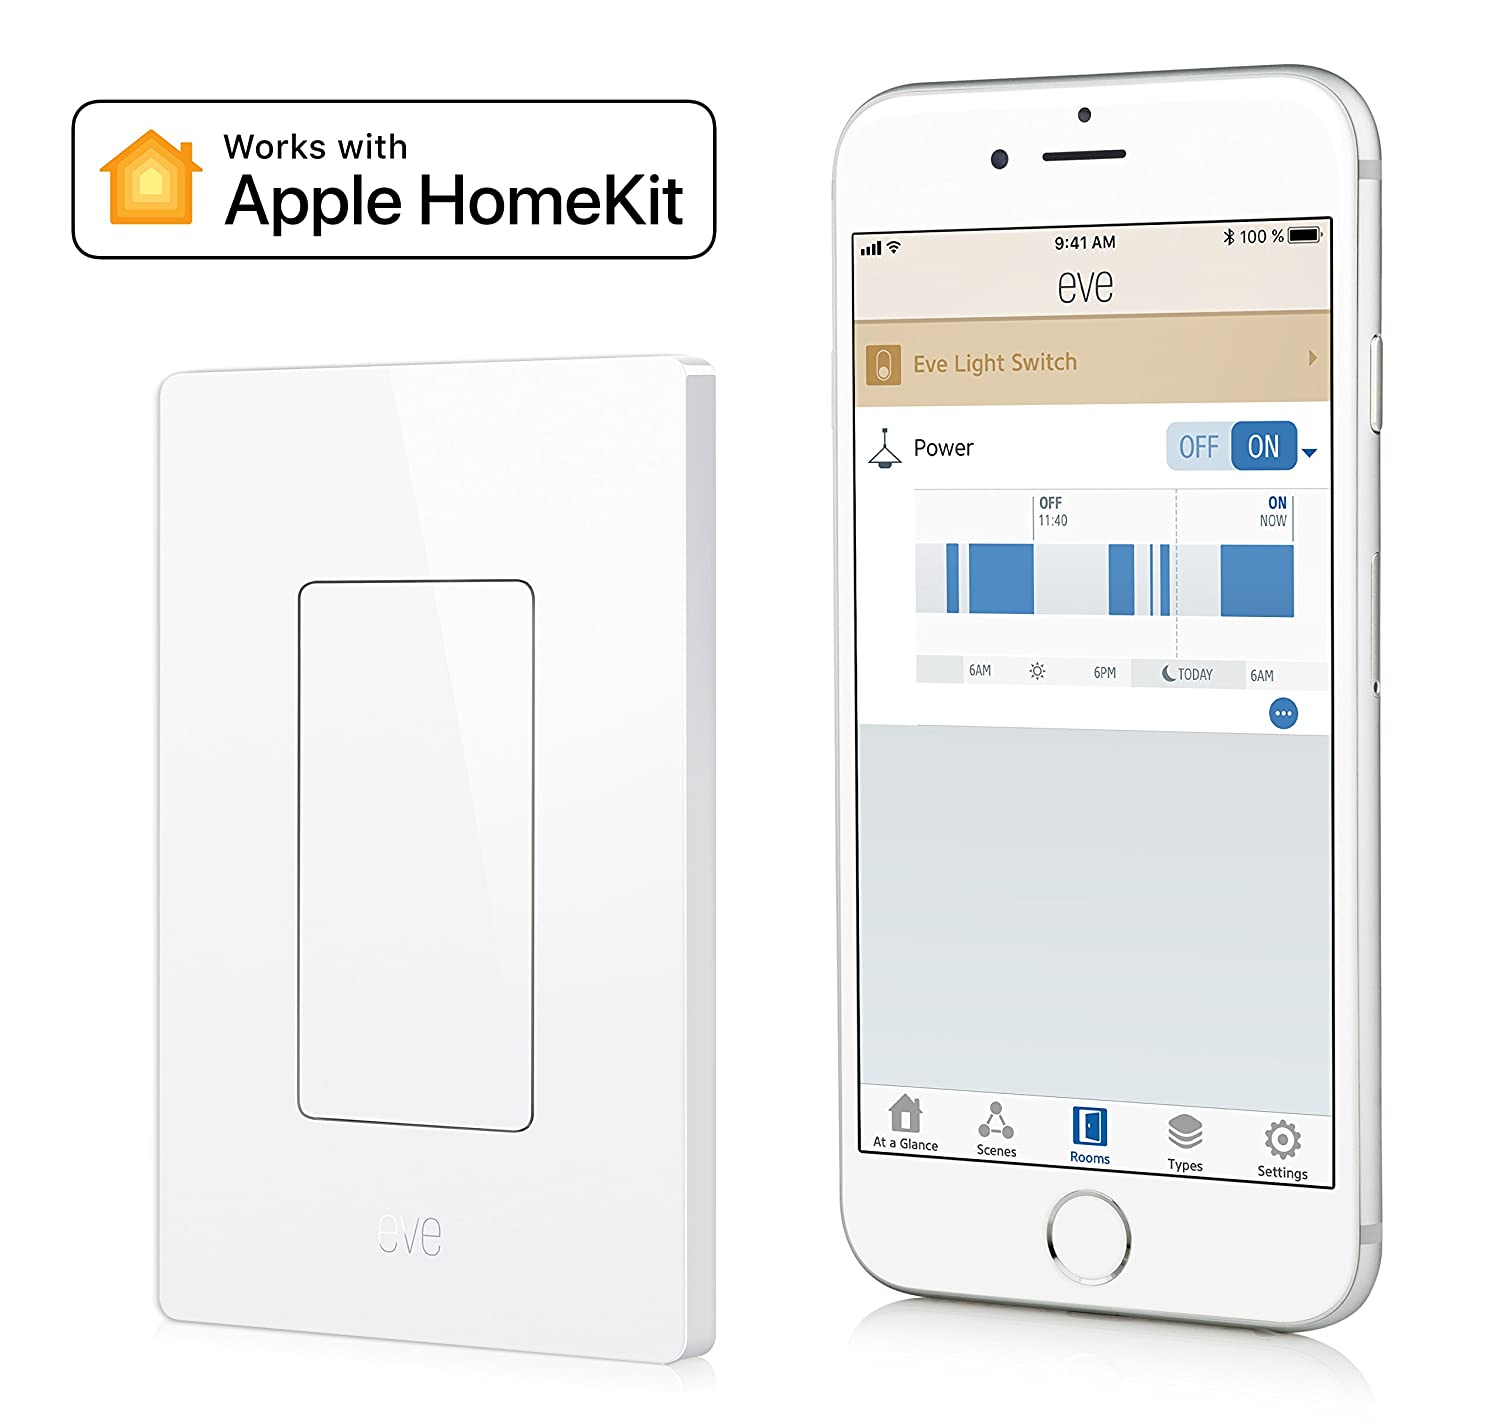 Eve Light Switch Connected Wall Easily Upgrade To Wiring 3 Way With 122 Intelligent Automate Your Lighting Timers And Rules Bluetooth Low Energy White Apple